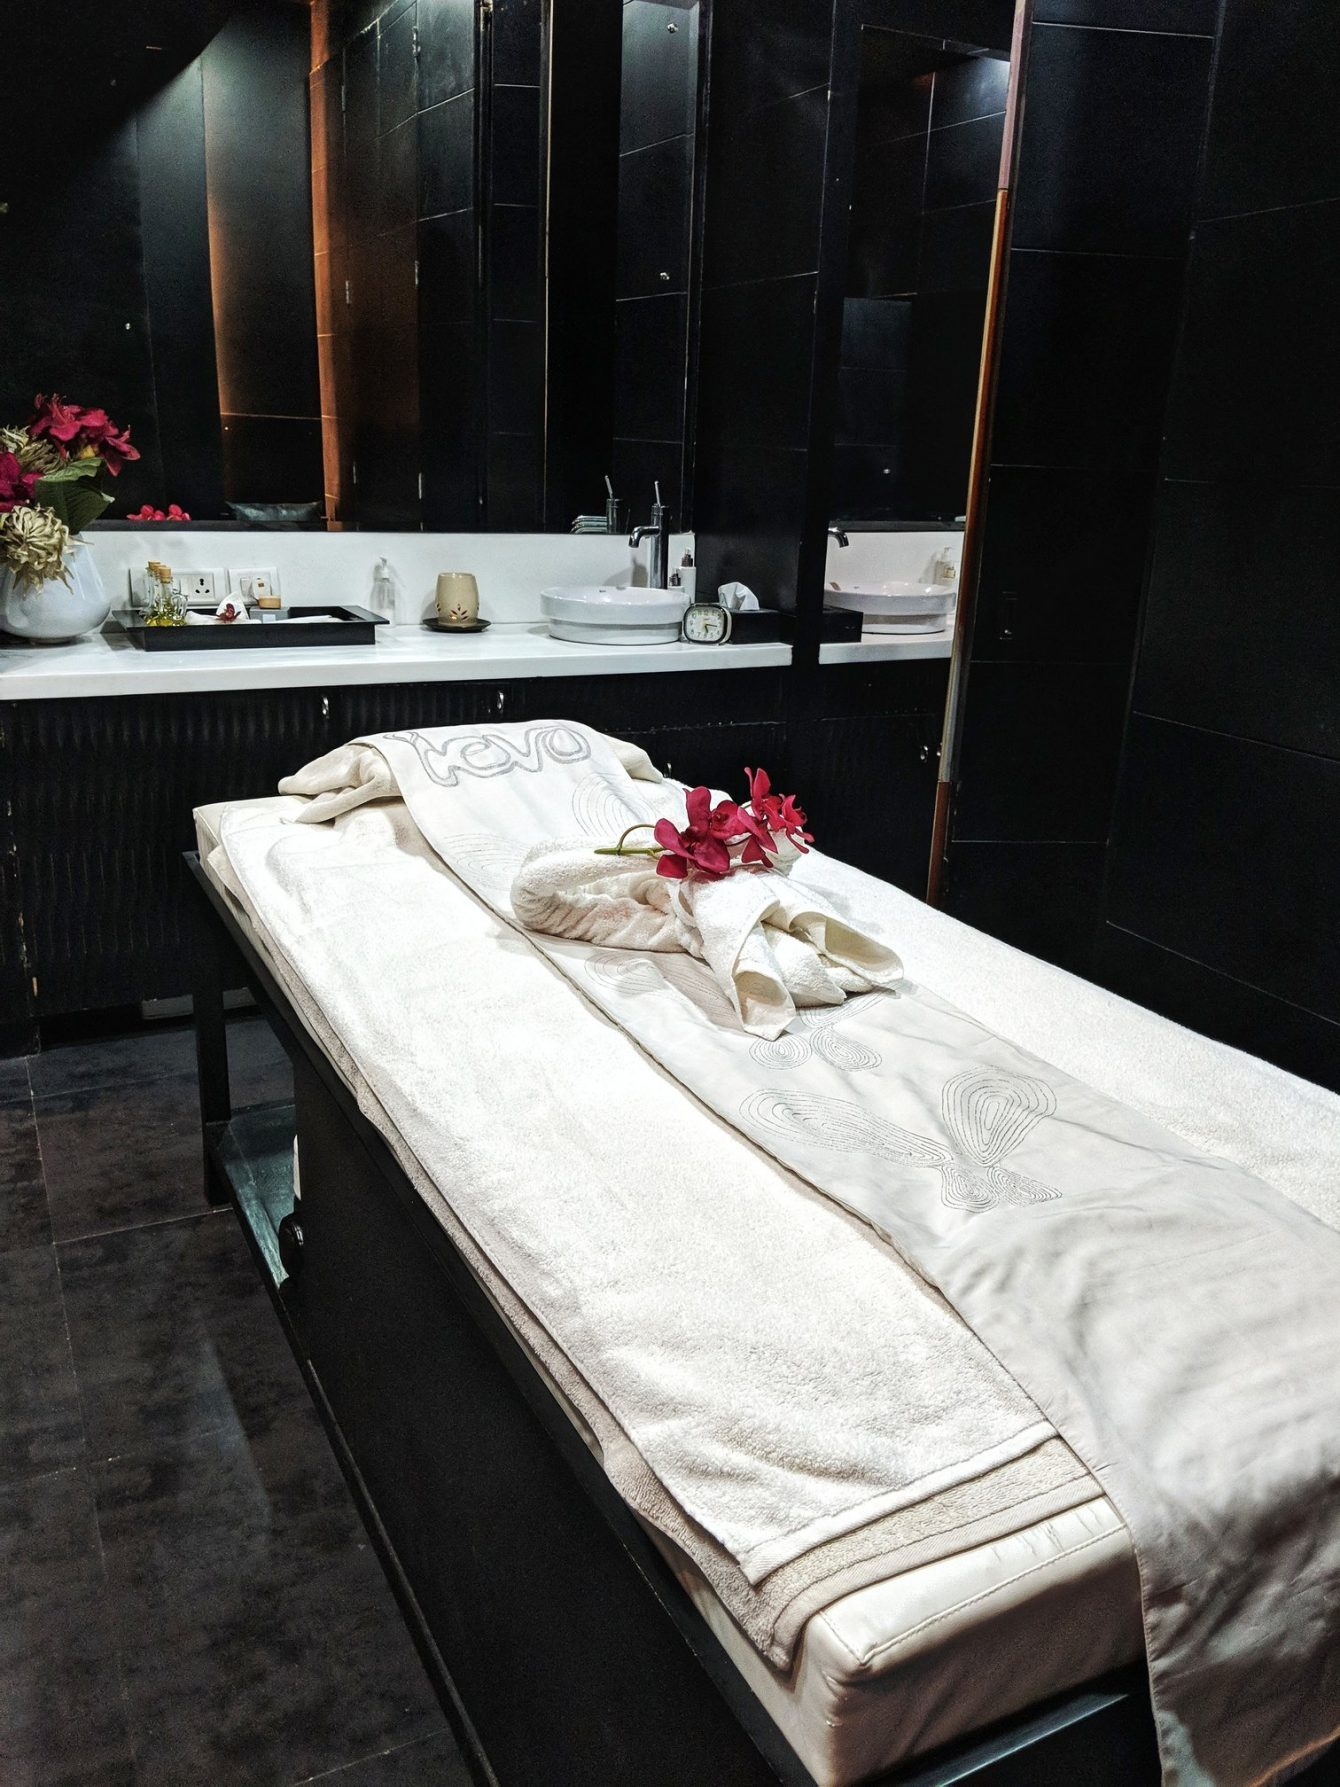 spa room in levo spalon